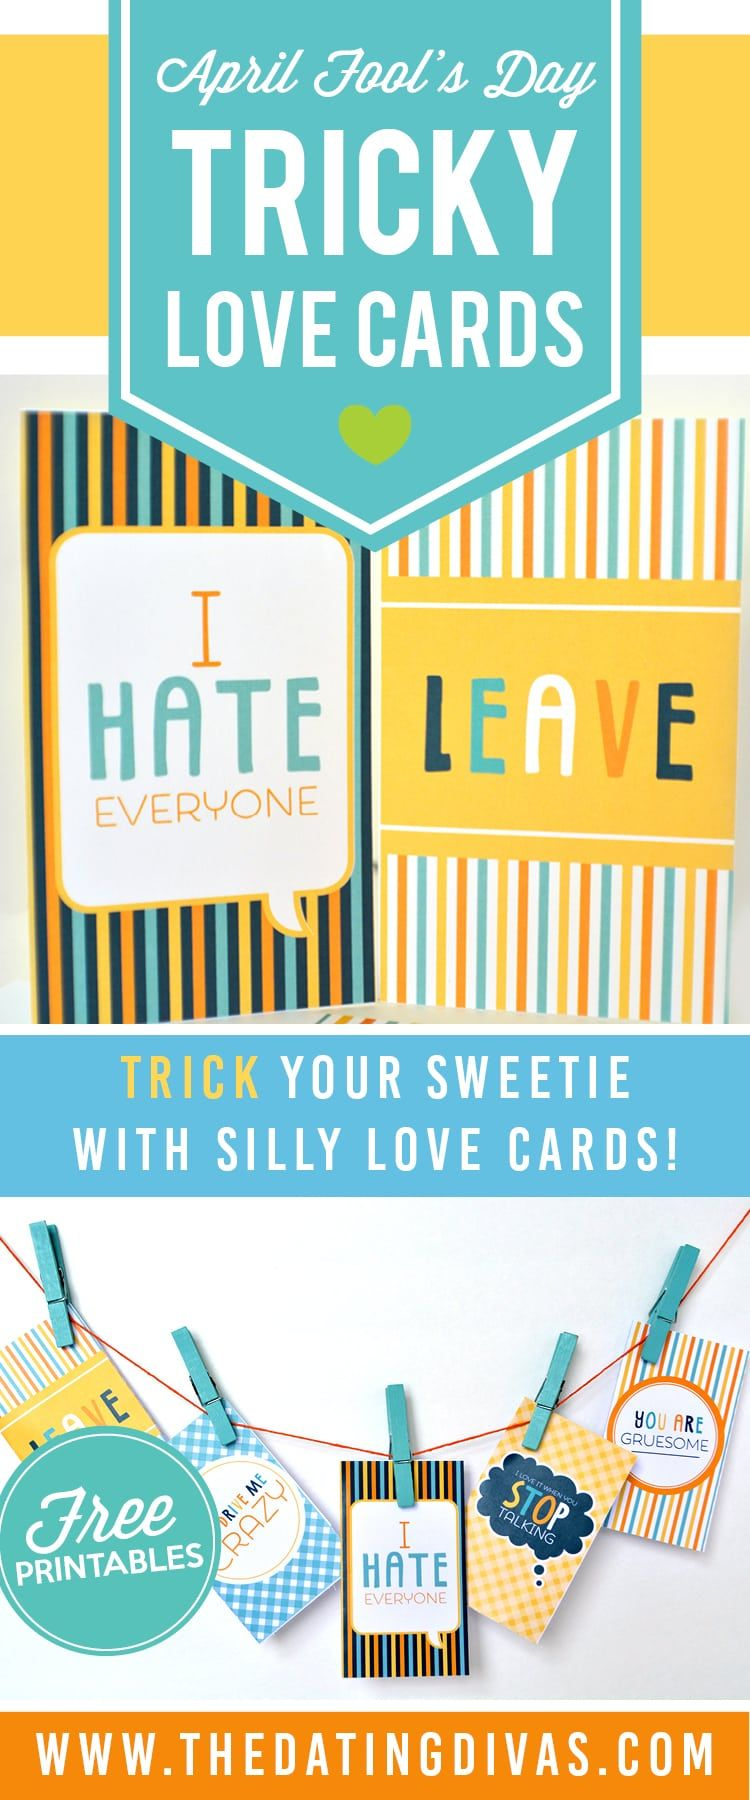 April fools day tricky love cards love cards the fool